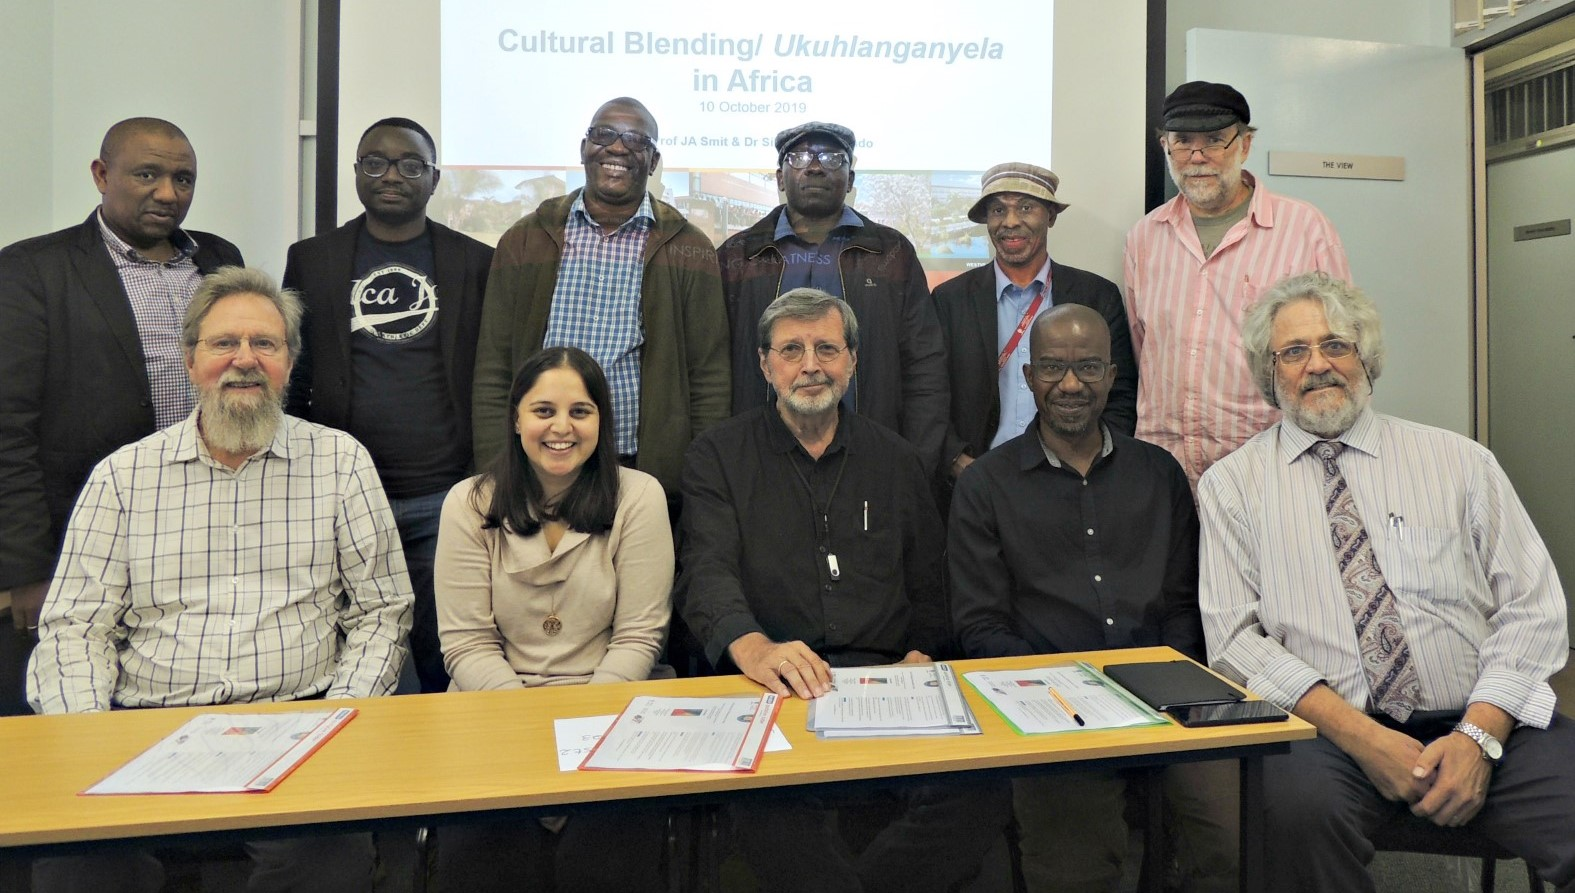 UKZN hosts first Interdisciplinary Cultural Blending/Ukuhlanganyela in Africa Colloquium